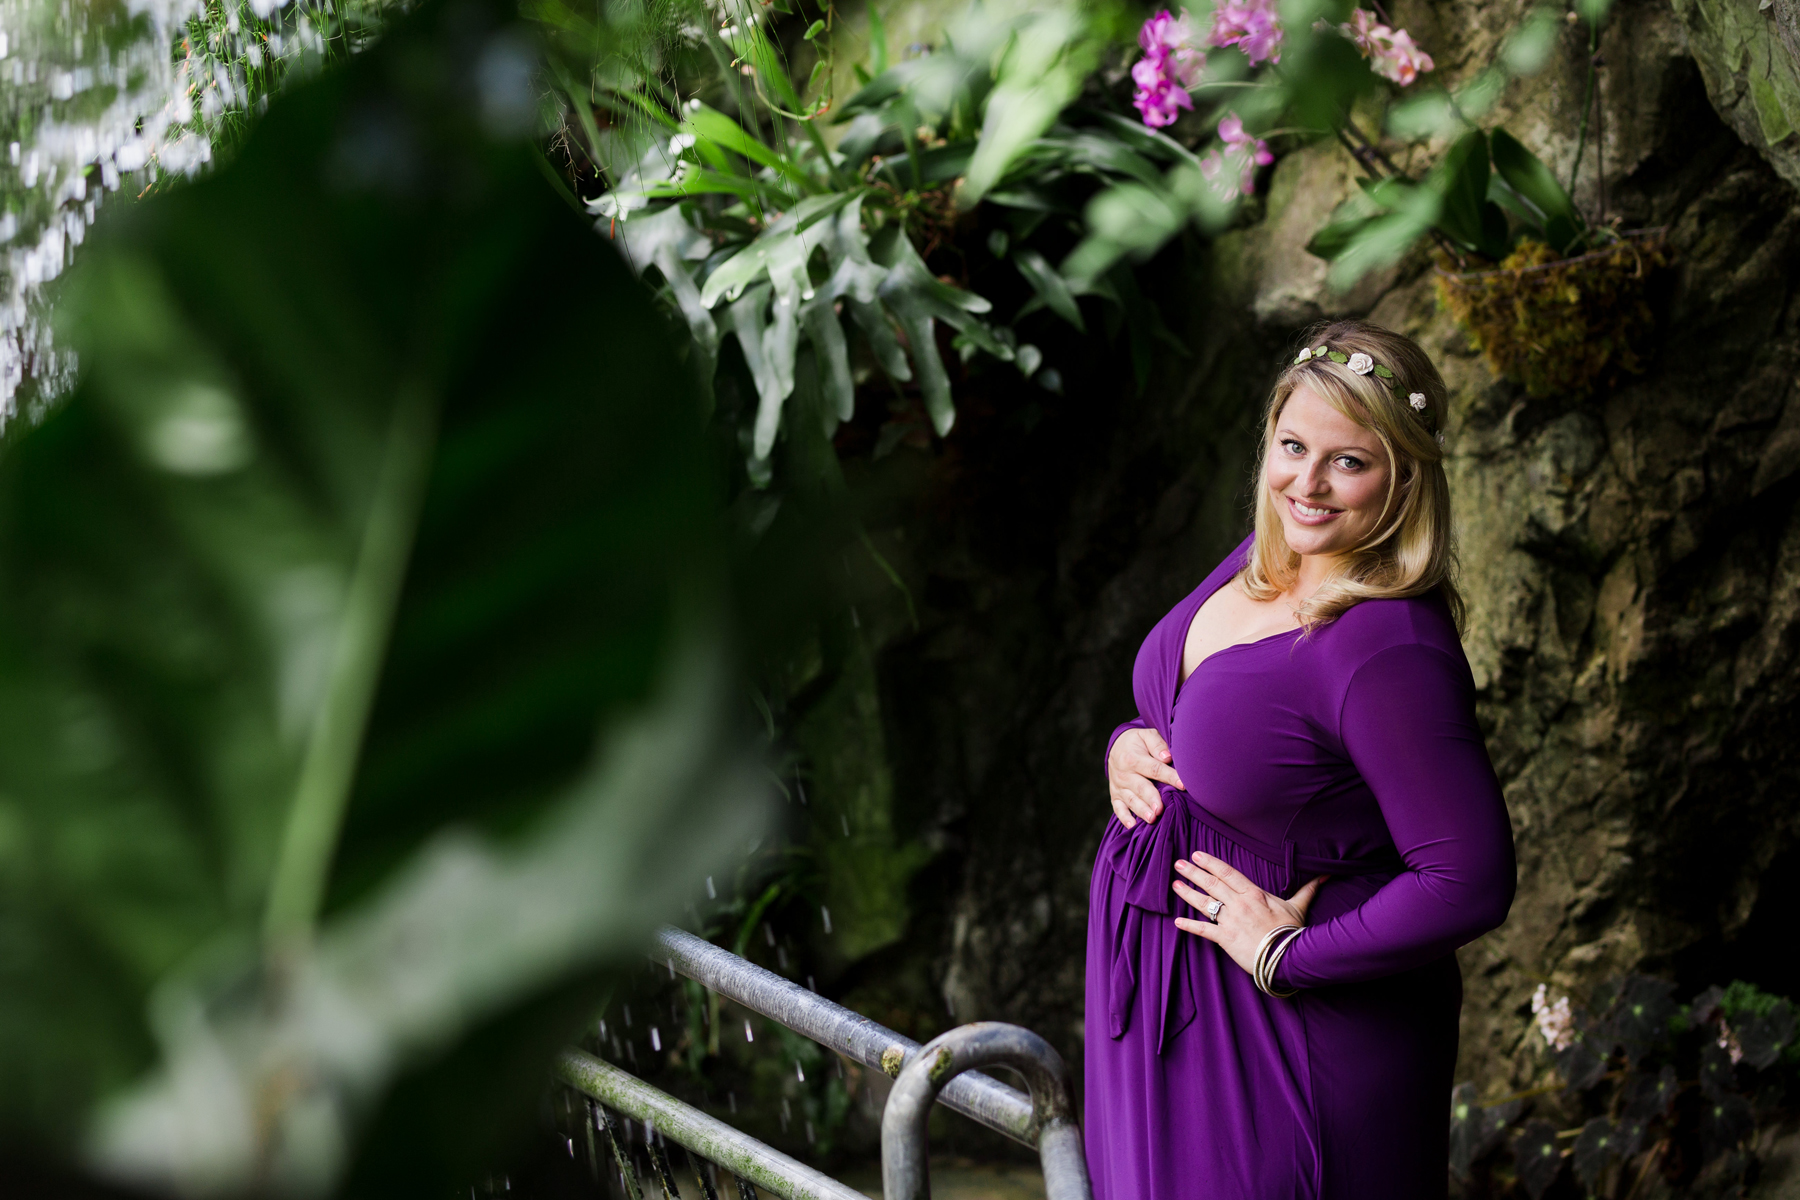 Myriad_Gardens_Crystal_Bridge_Maternity_Photos_OKC.jpg